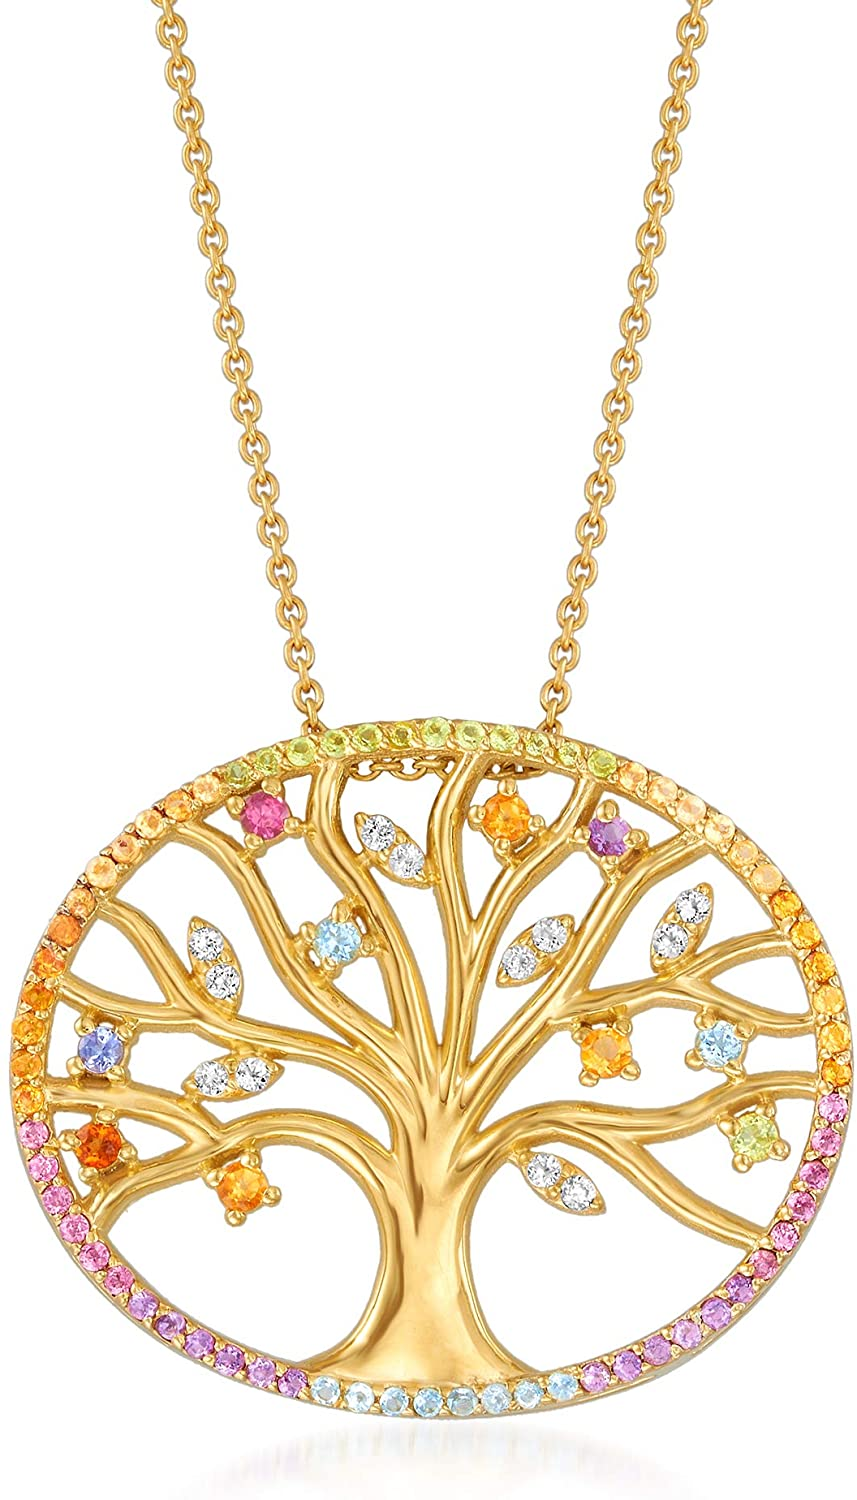 Ross-Simons 0.94 ct. t.w. Multi-Gemstone Tree Of Life Pendant Necklace in 18kt Gold Over Sterling